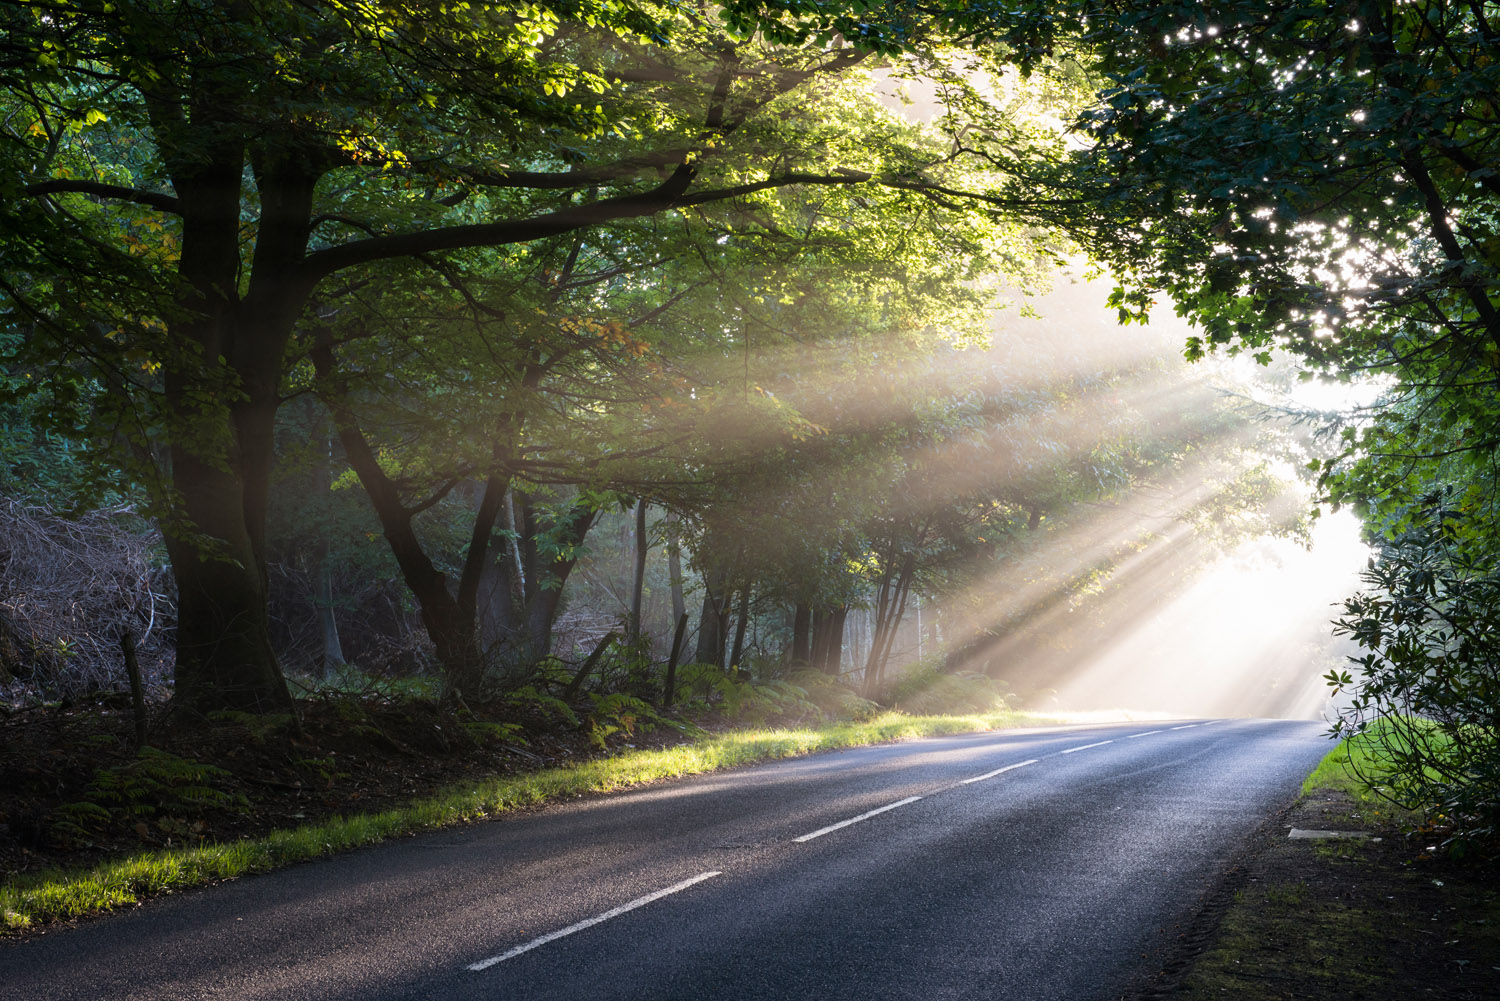 Morning sun rays falling on forest road, Ashdown Forest, Sussex, England